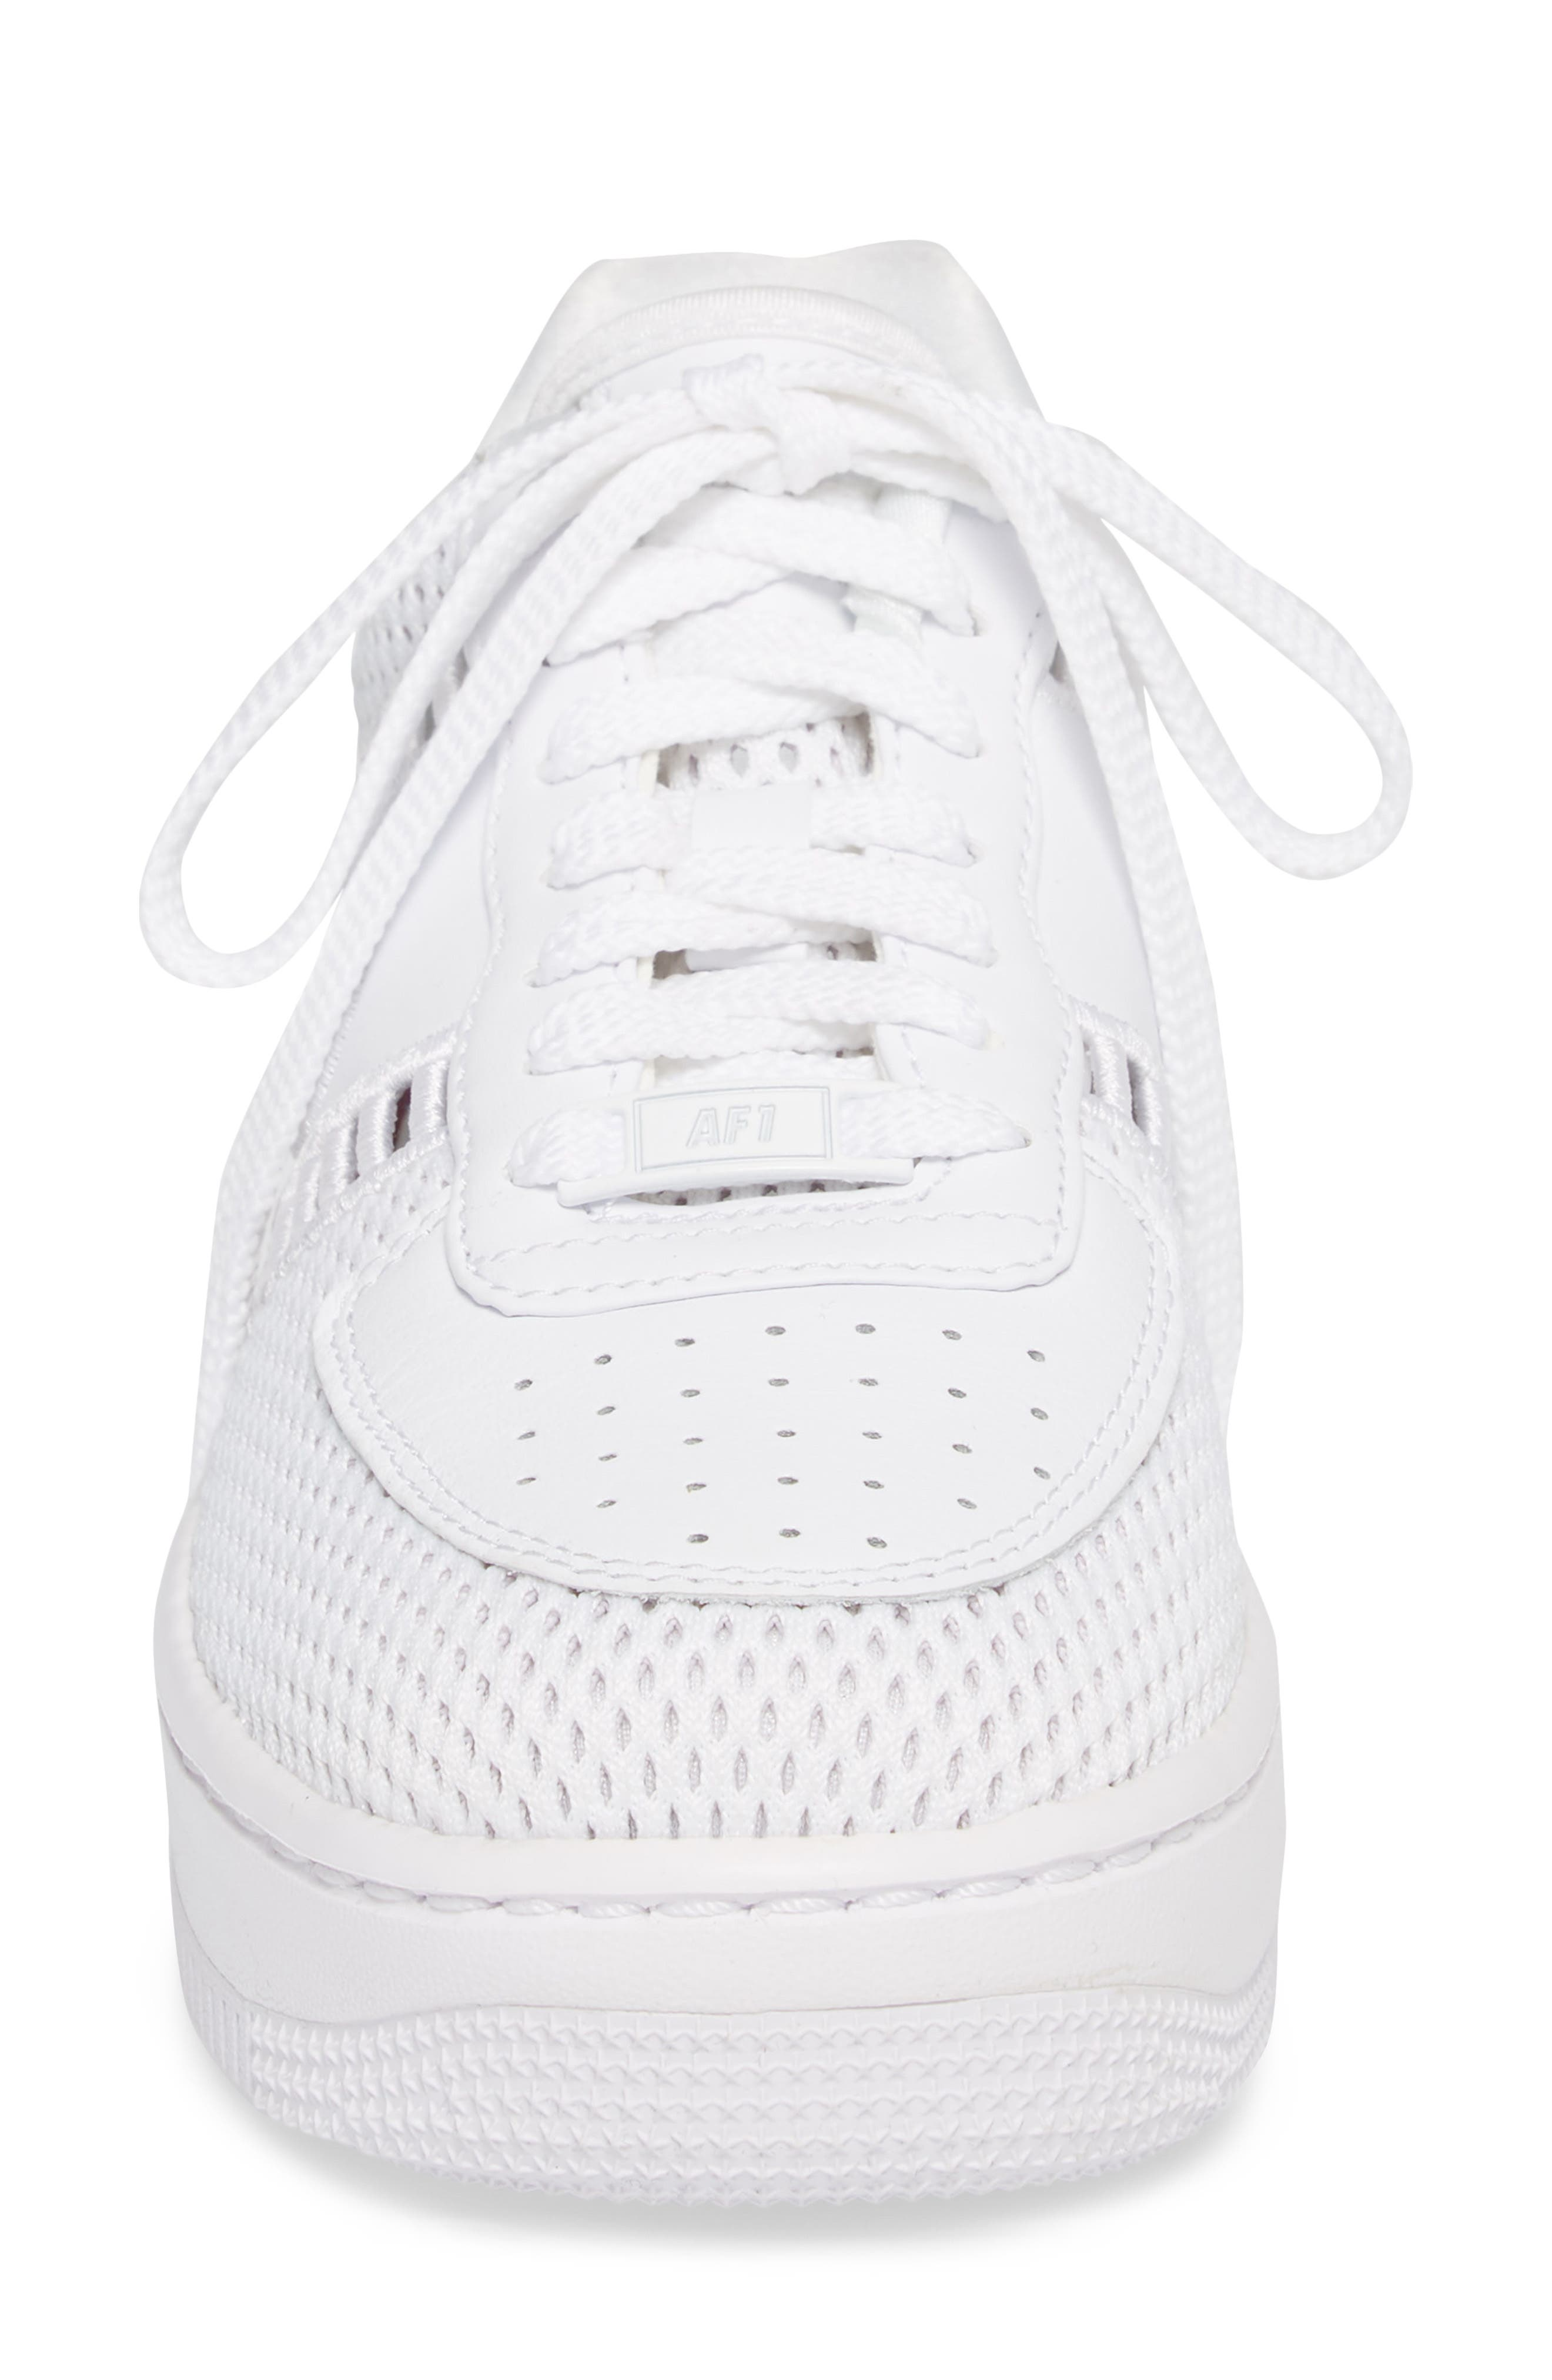 Air Force 1 Upstep SI Mesh Sneaker,                             Alternate thumbnail 4, color,                             100